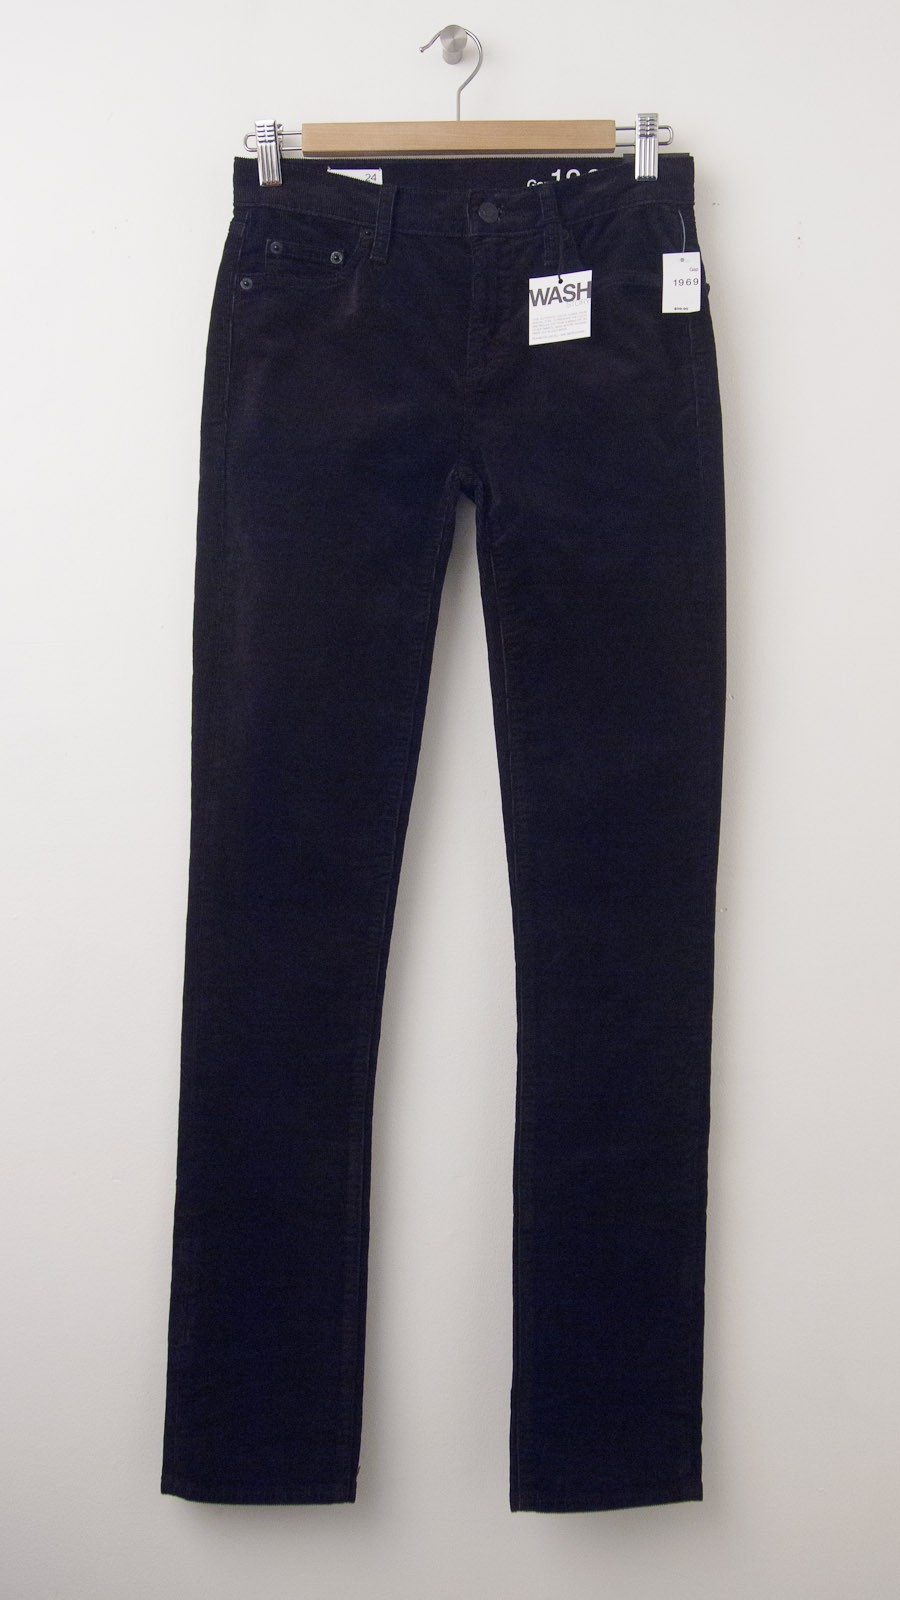 diversified latest designs hot-seeling original look for NEW Gap 1969 Mid-Rise Real Straight Cords Corduroy Pants in True Black